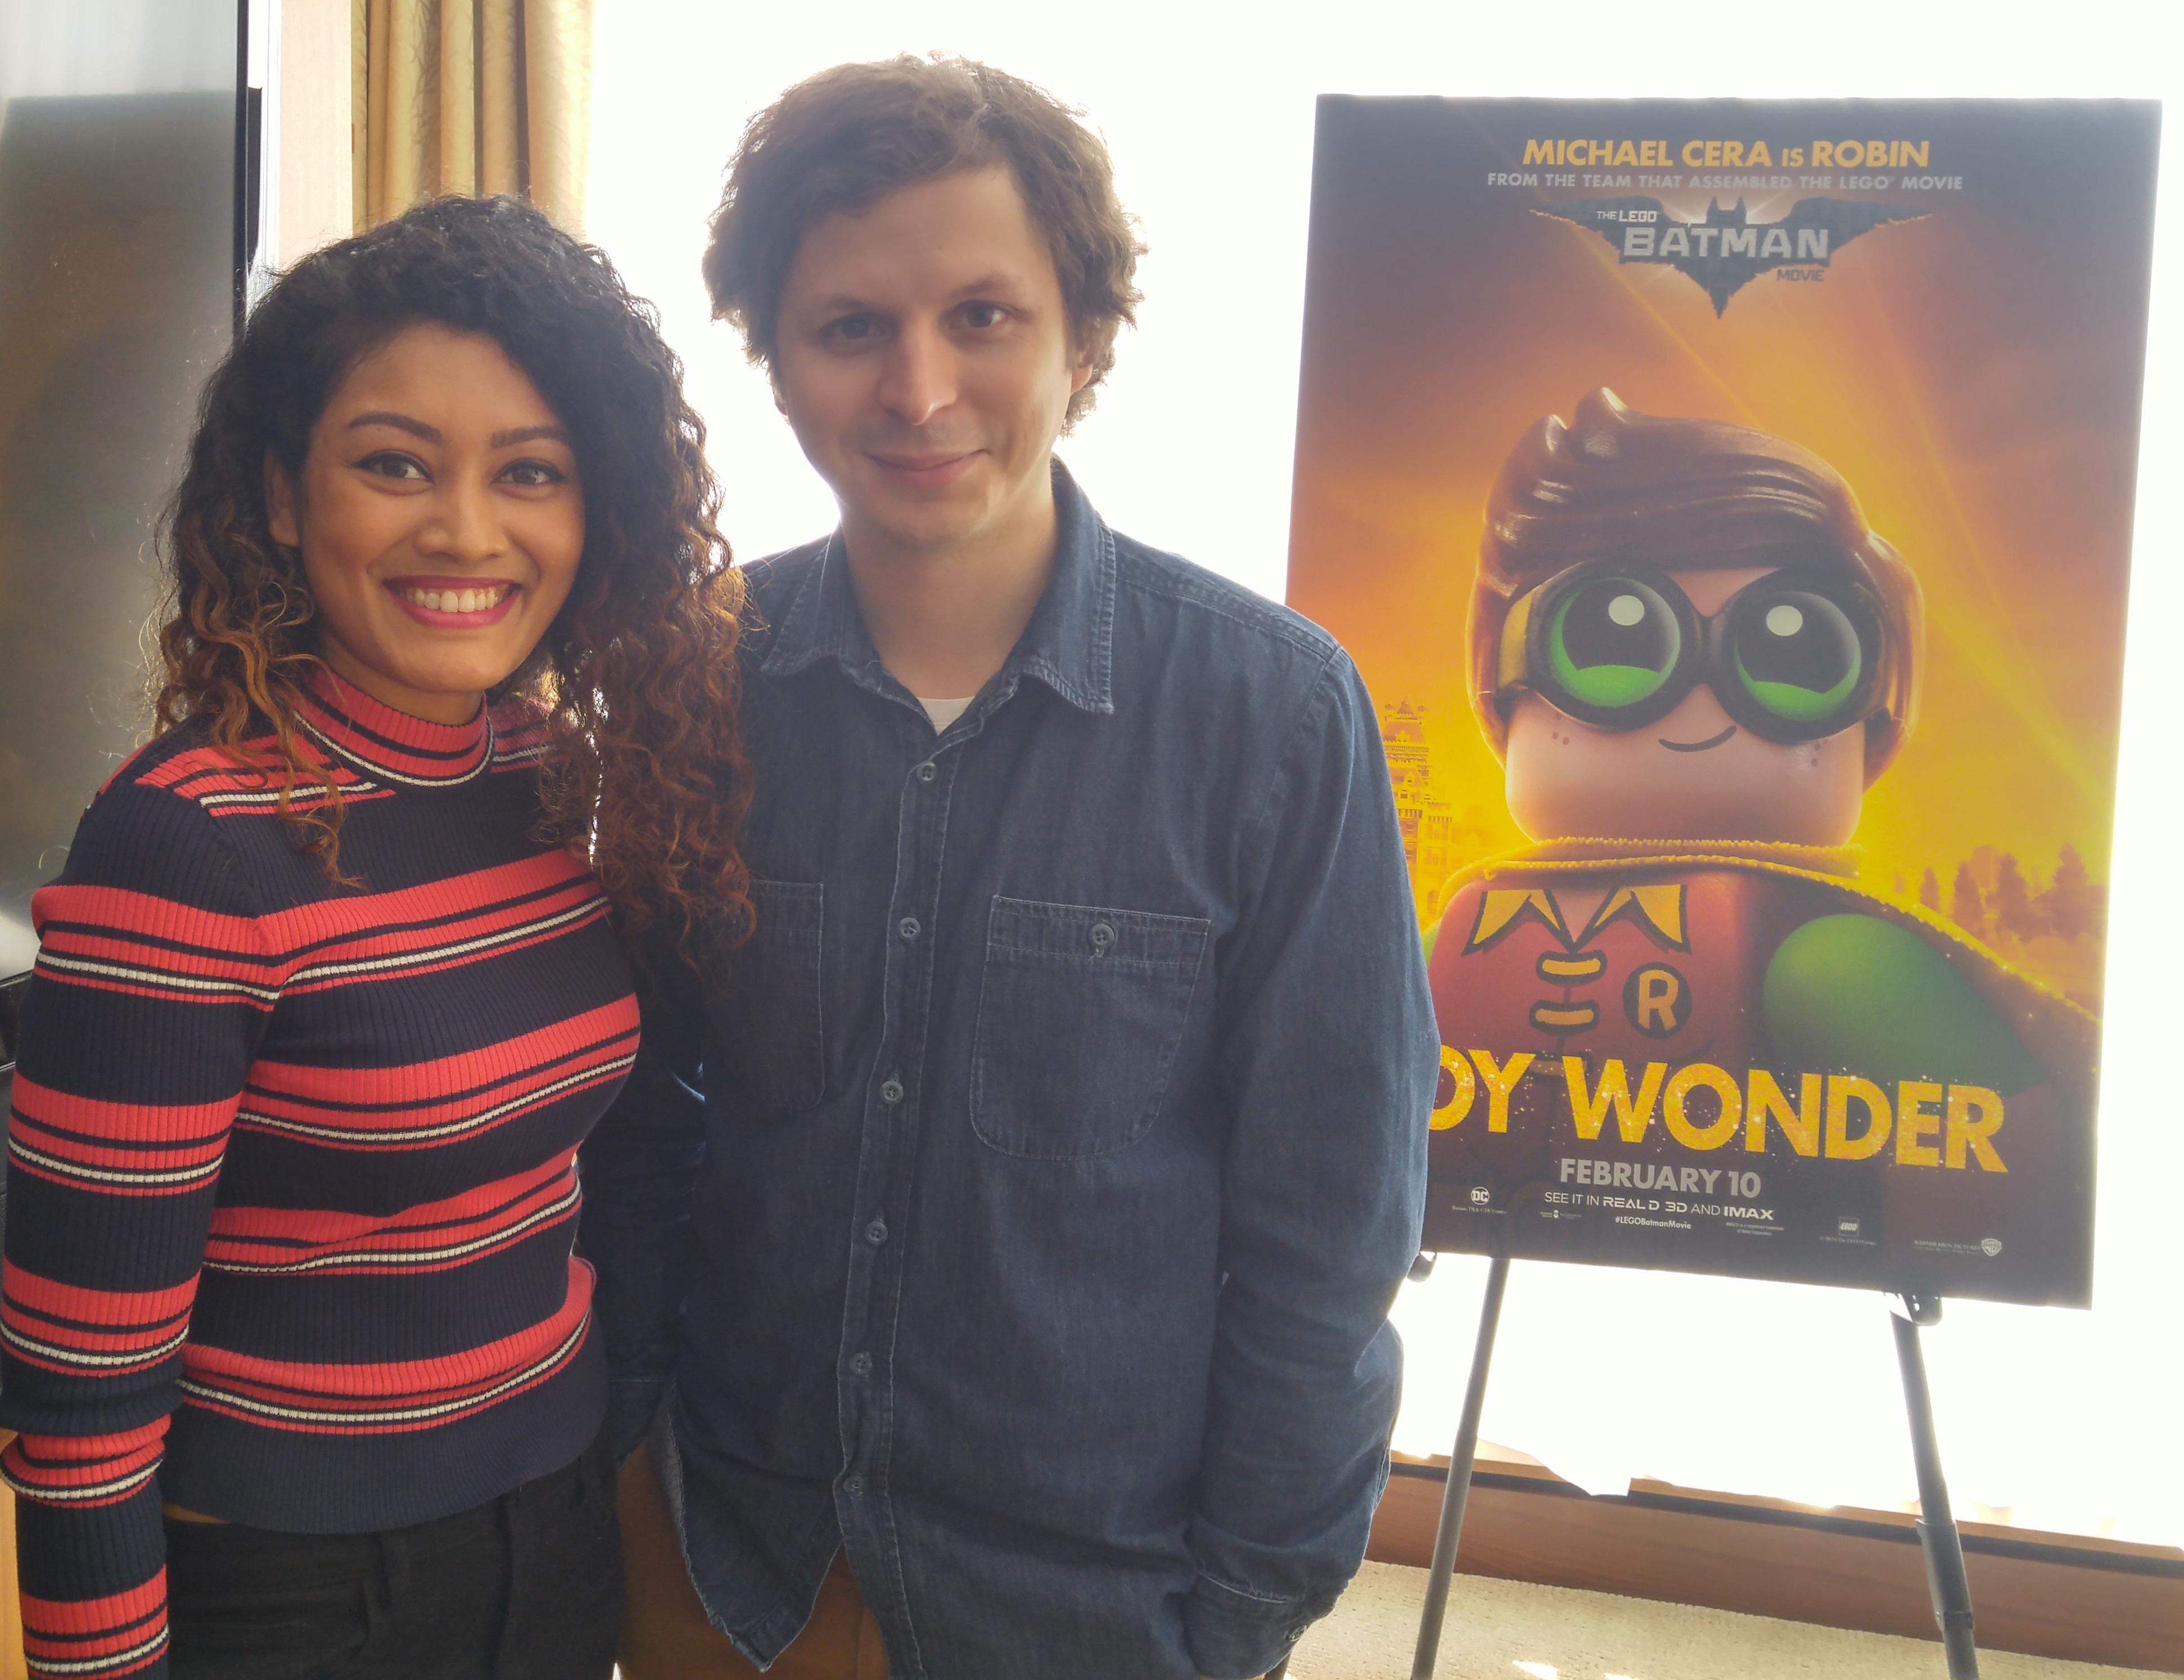 Marriska Fernandes and Michael Cera